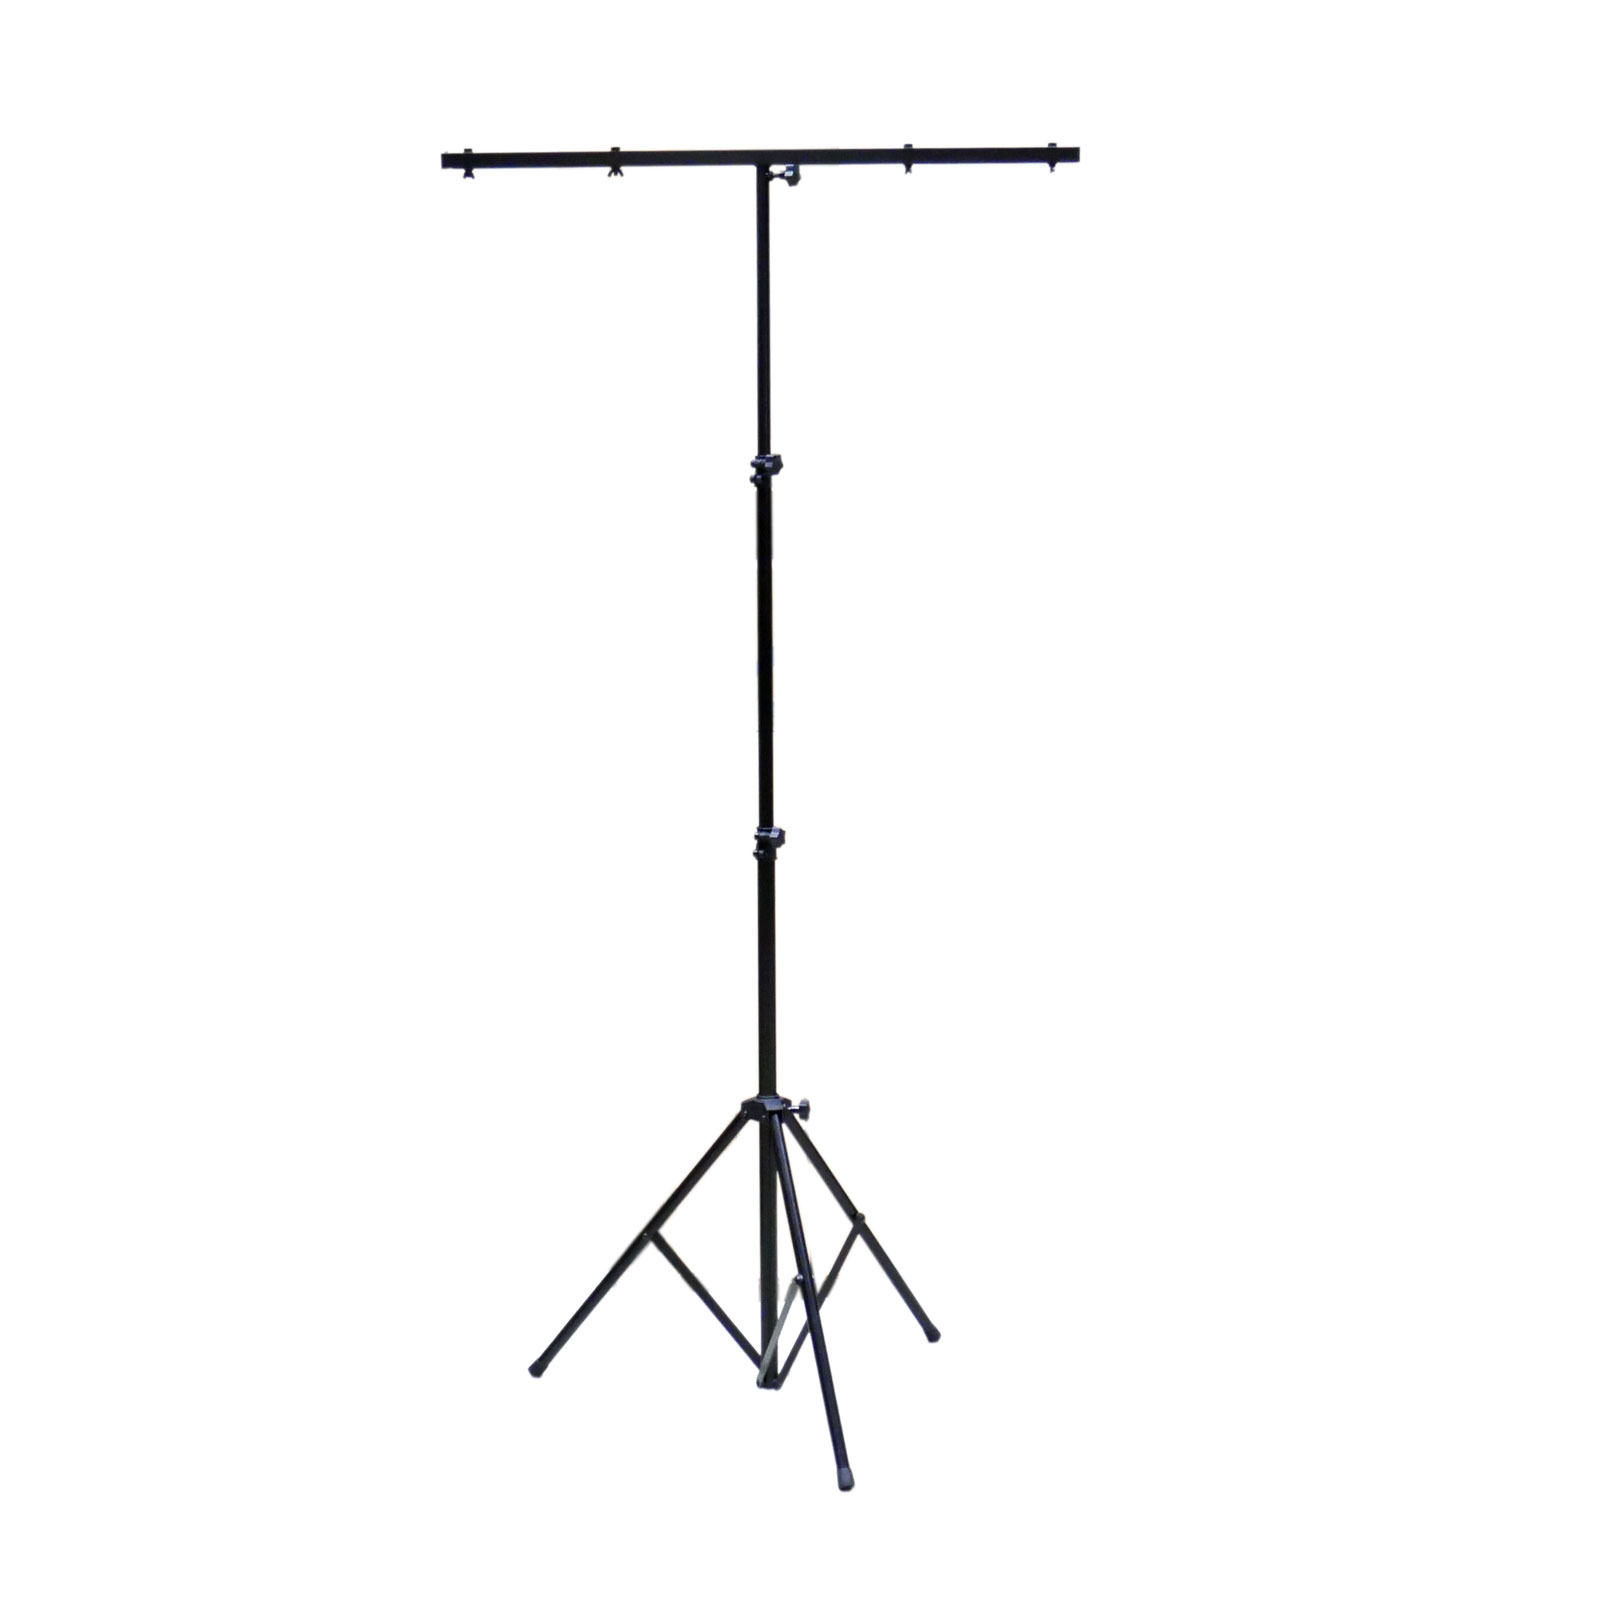 Bravopro Ls014 3 Section Folding Lighting Stand With T Bar X4